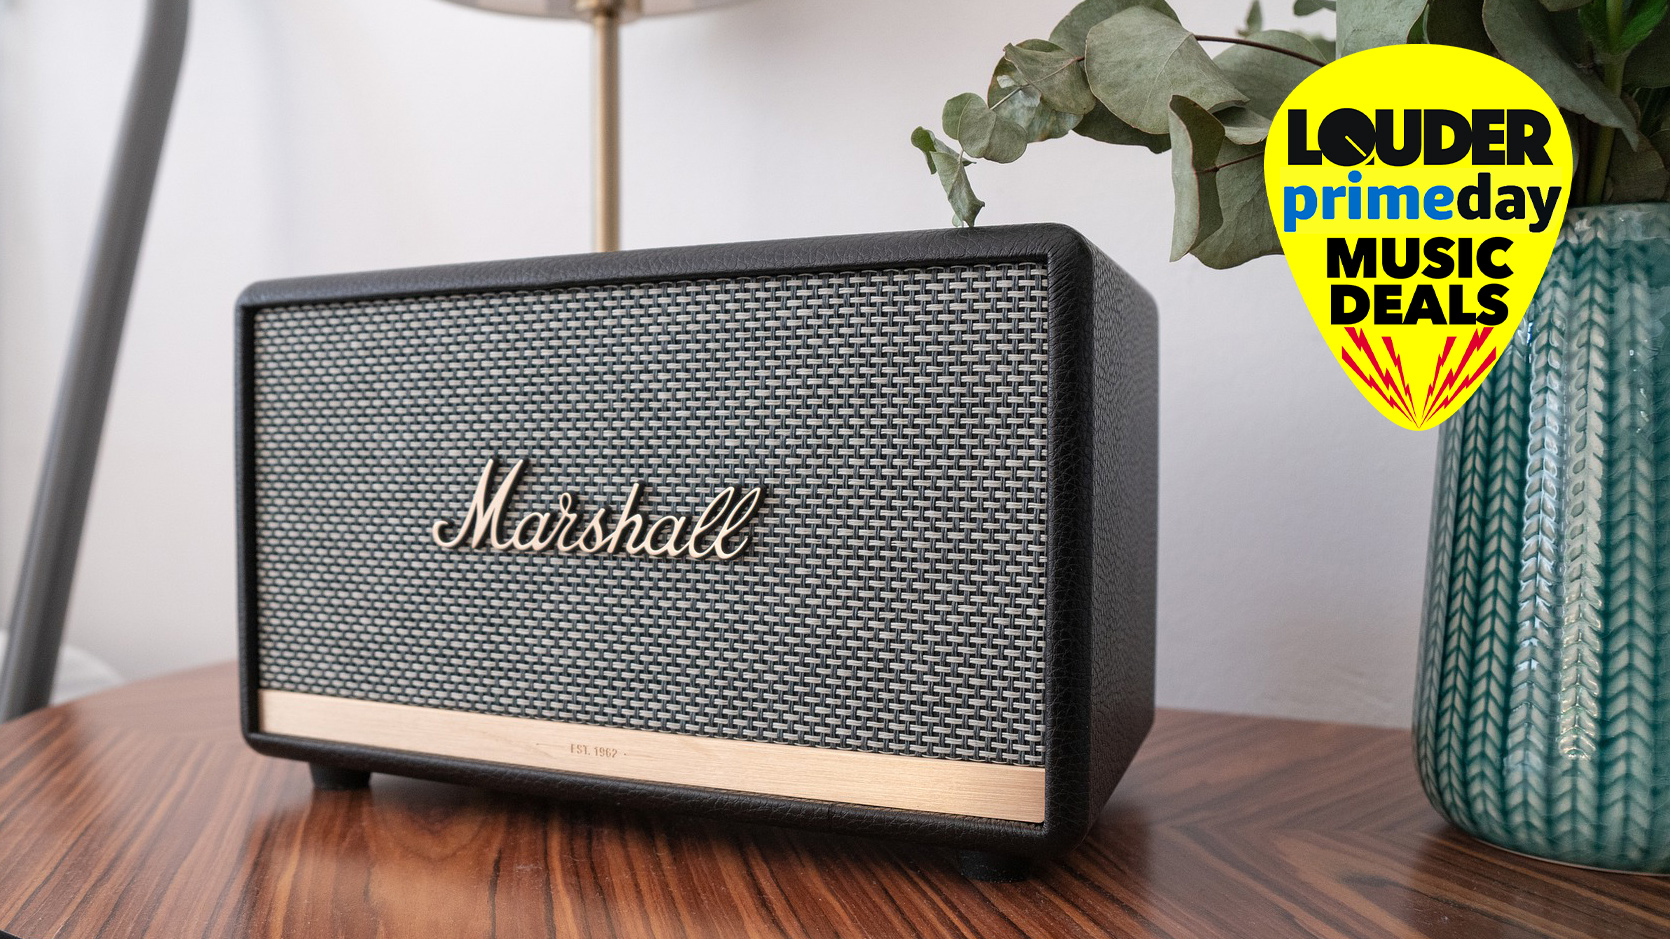 Amazon Prime Day 2019: The best wireless and bluetooth speaker deals | Louder